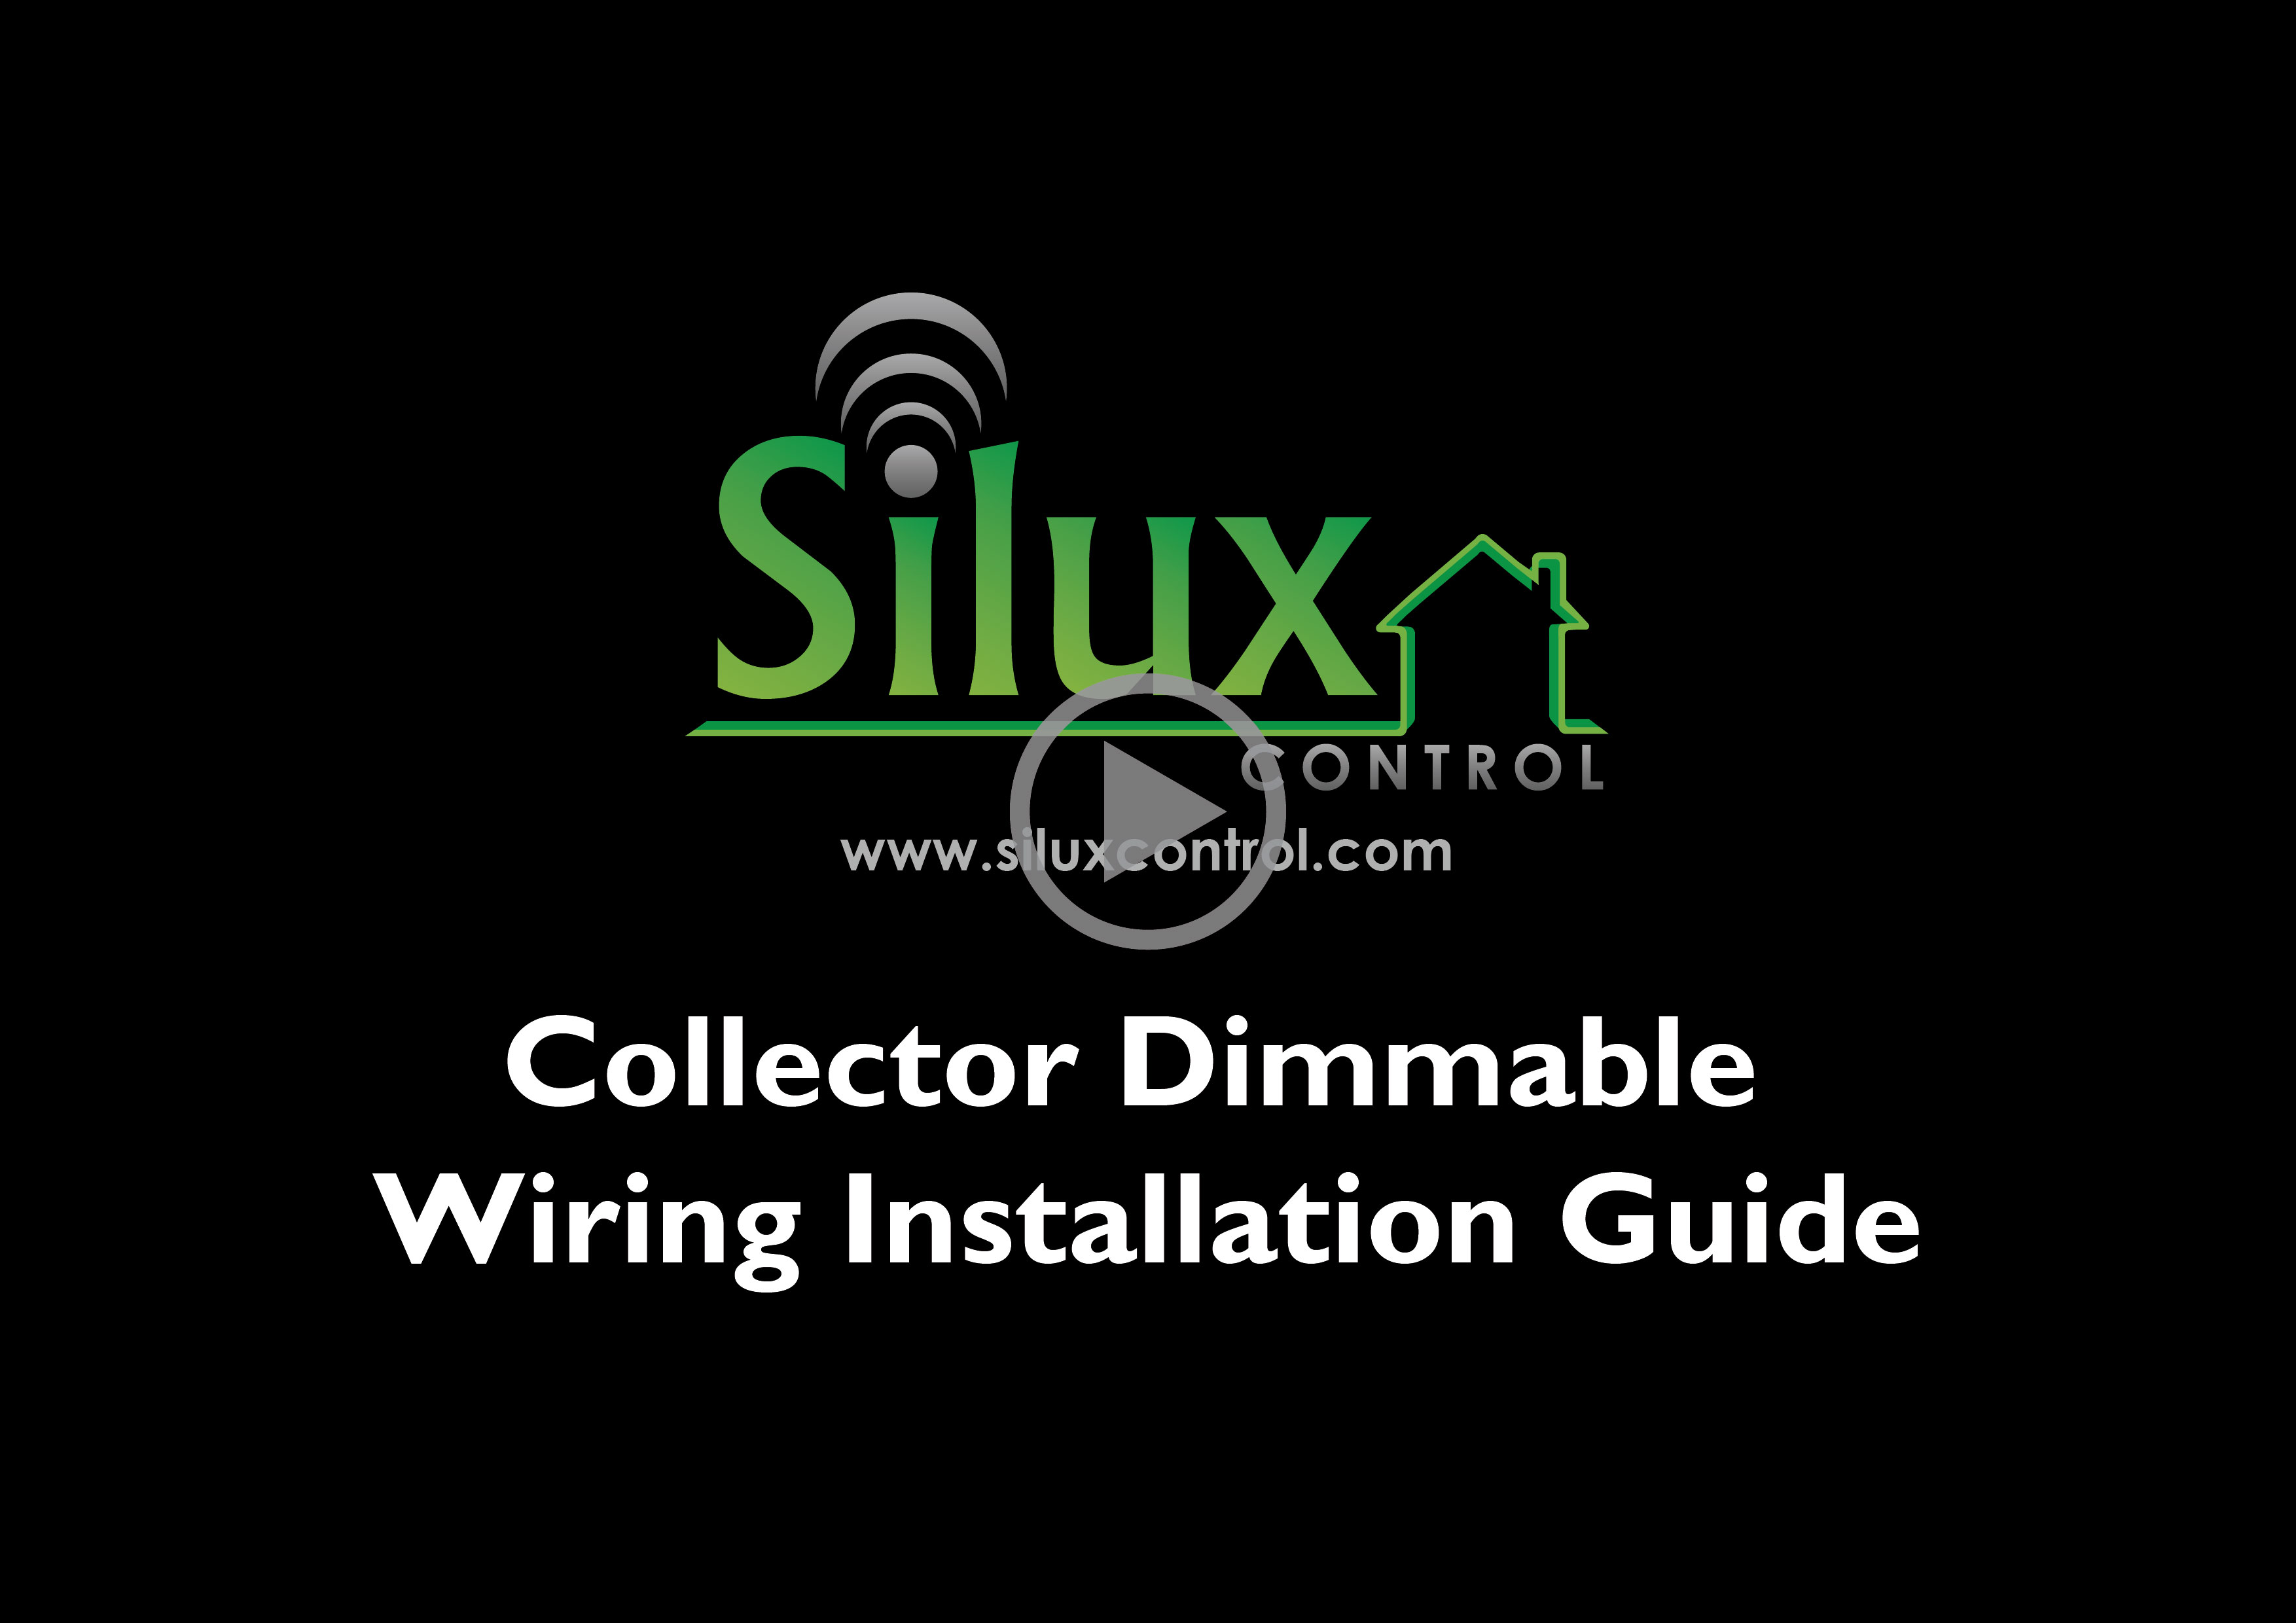 Silux control collector dimmable instruction video